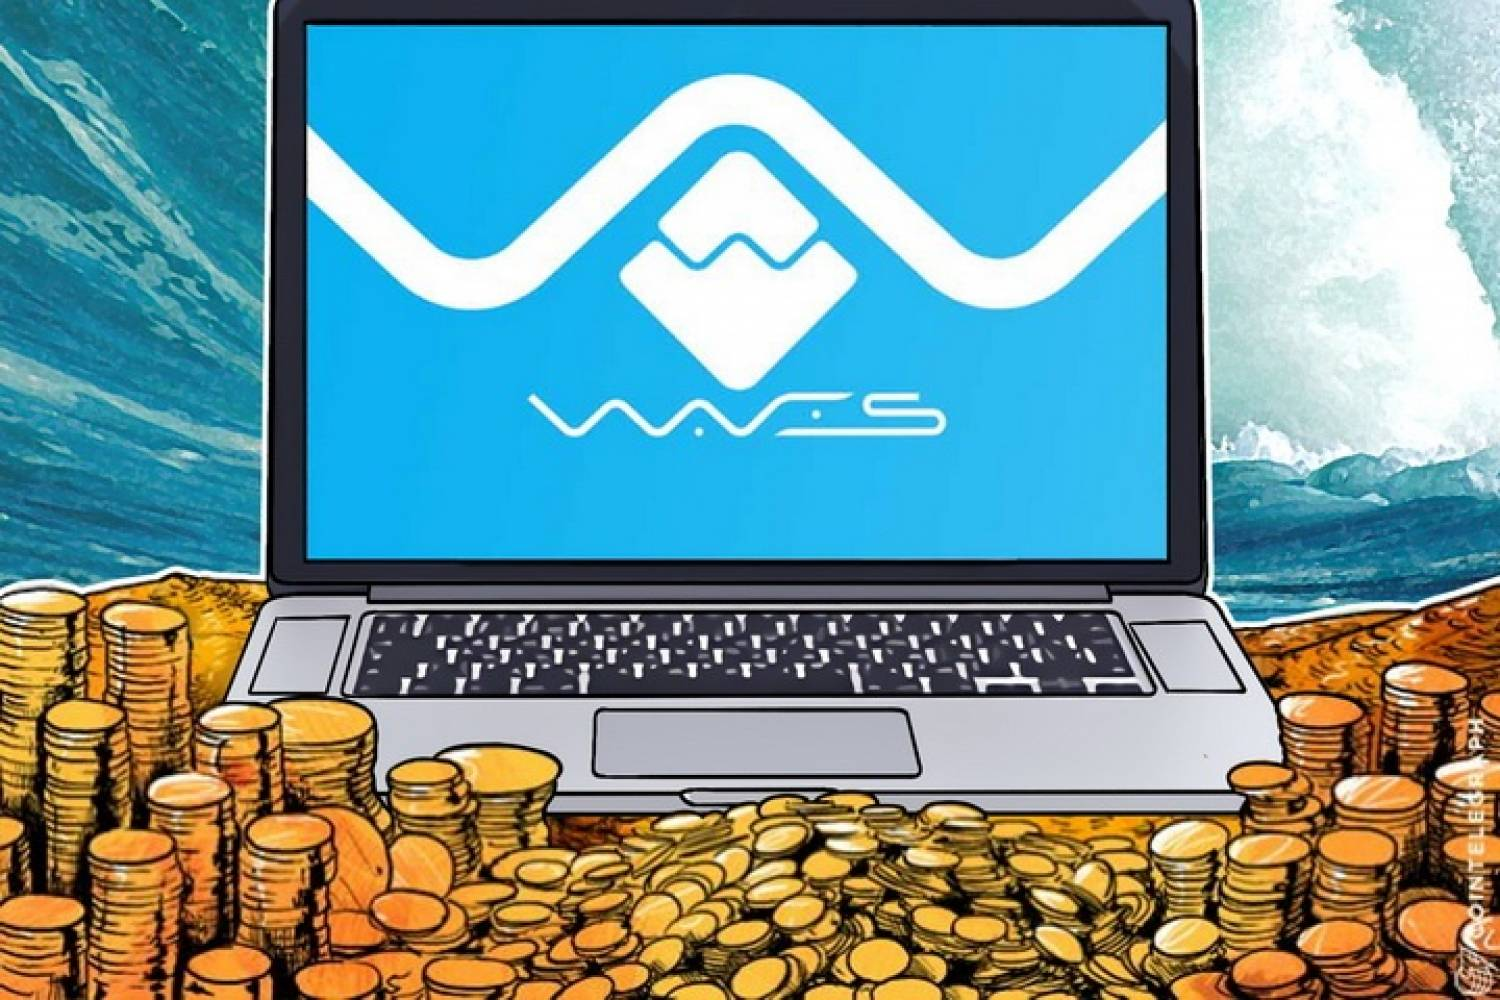 Waves token platform and coins